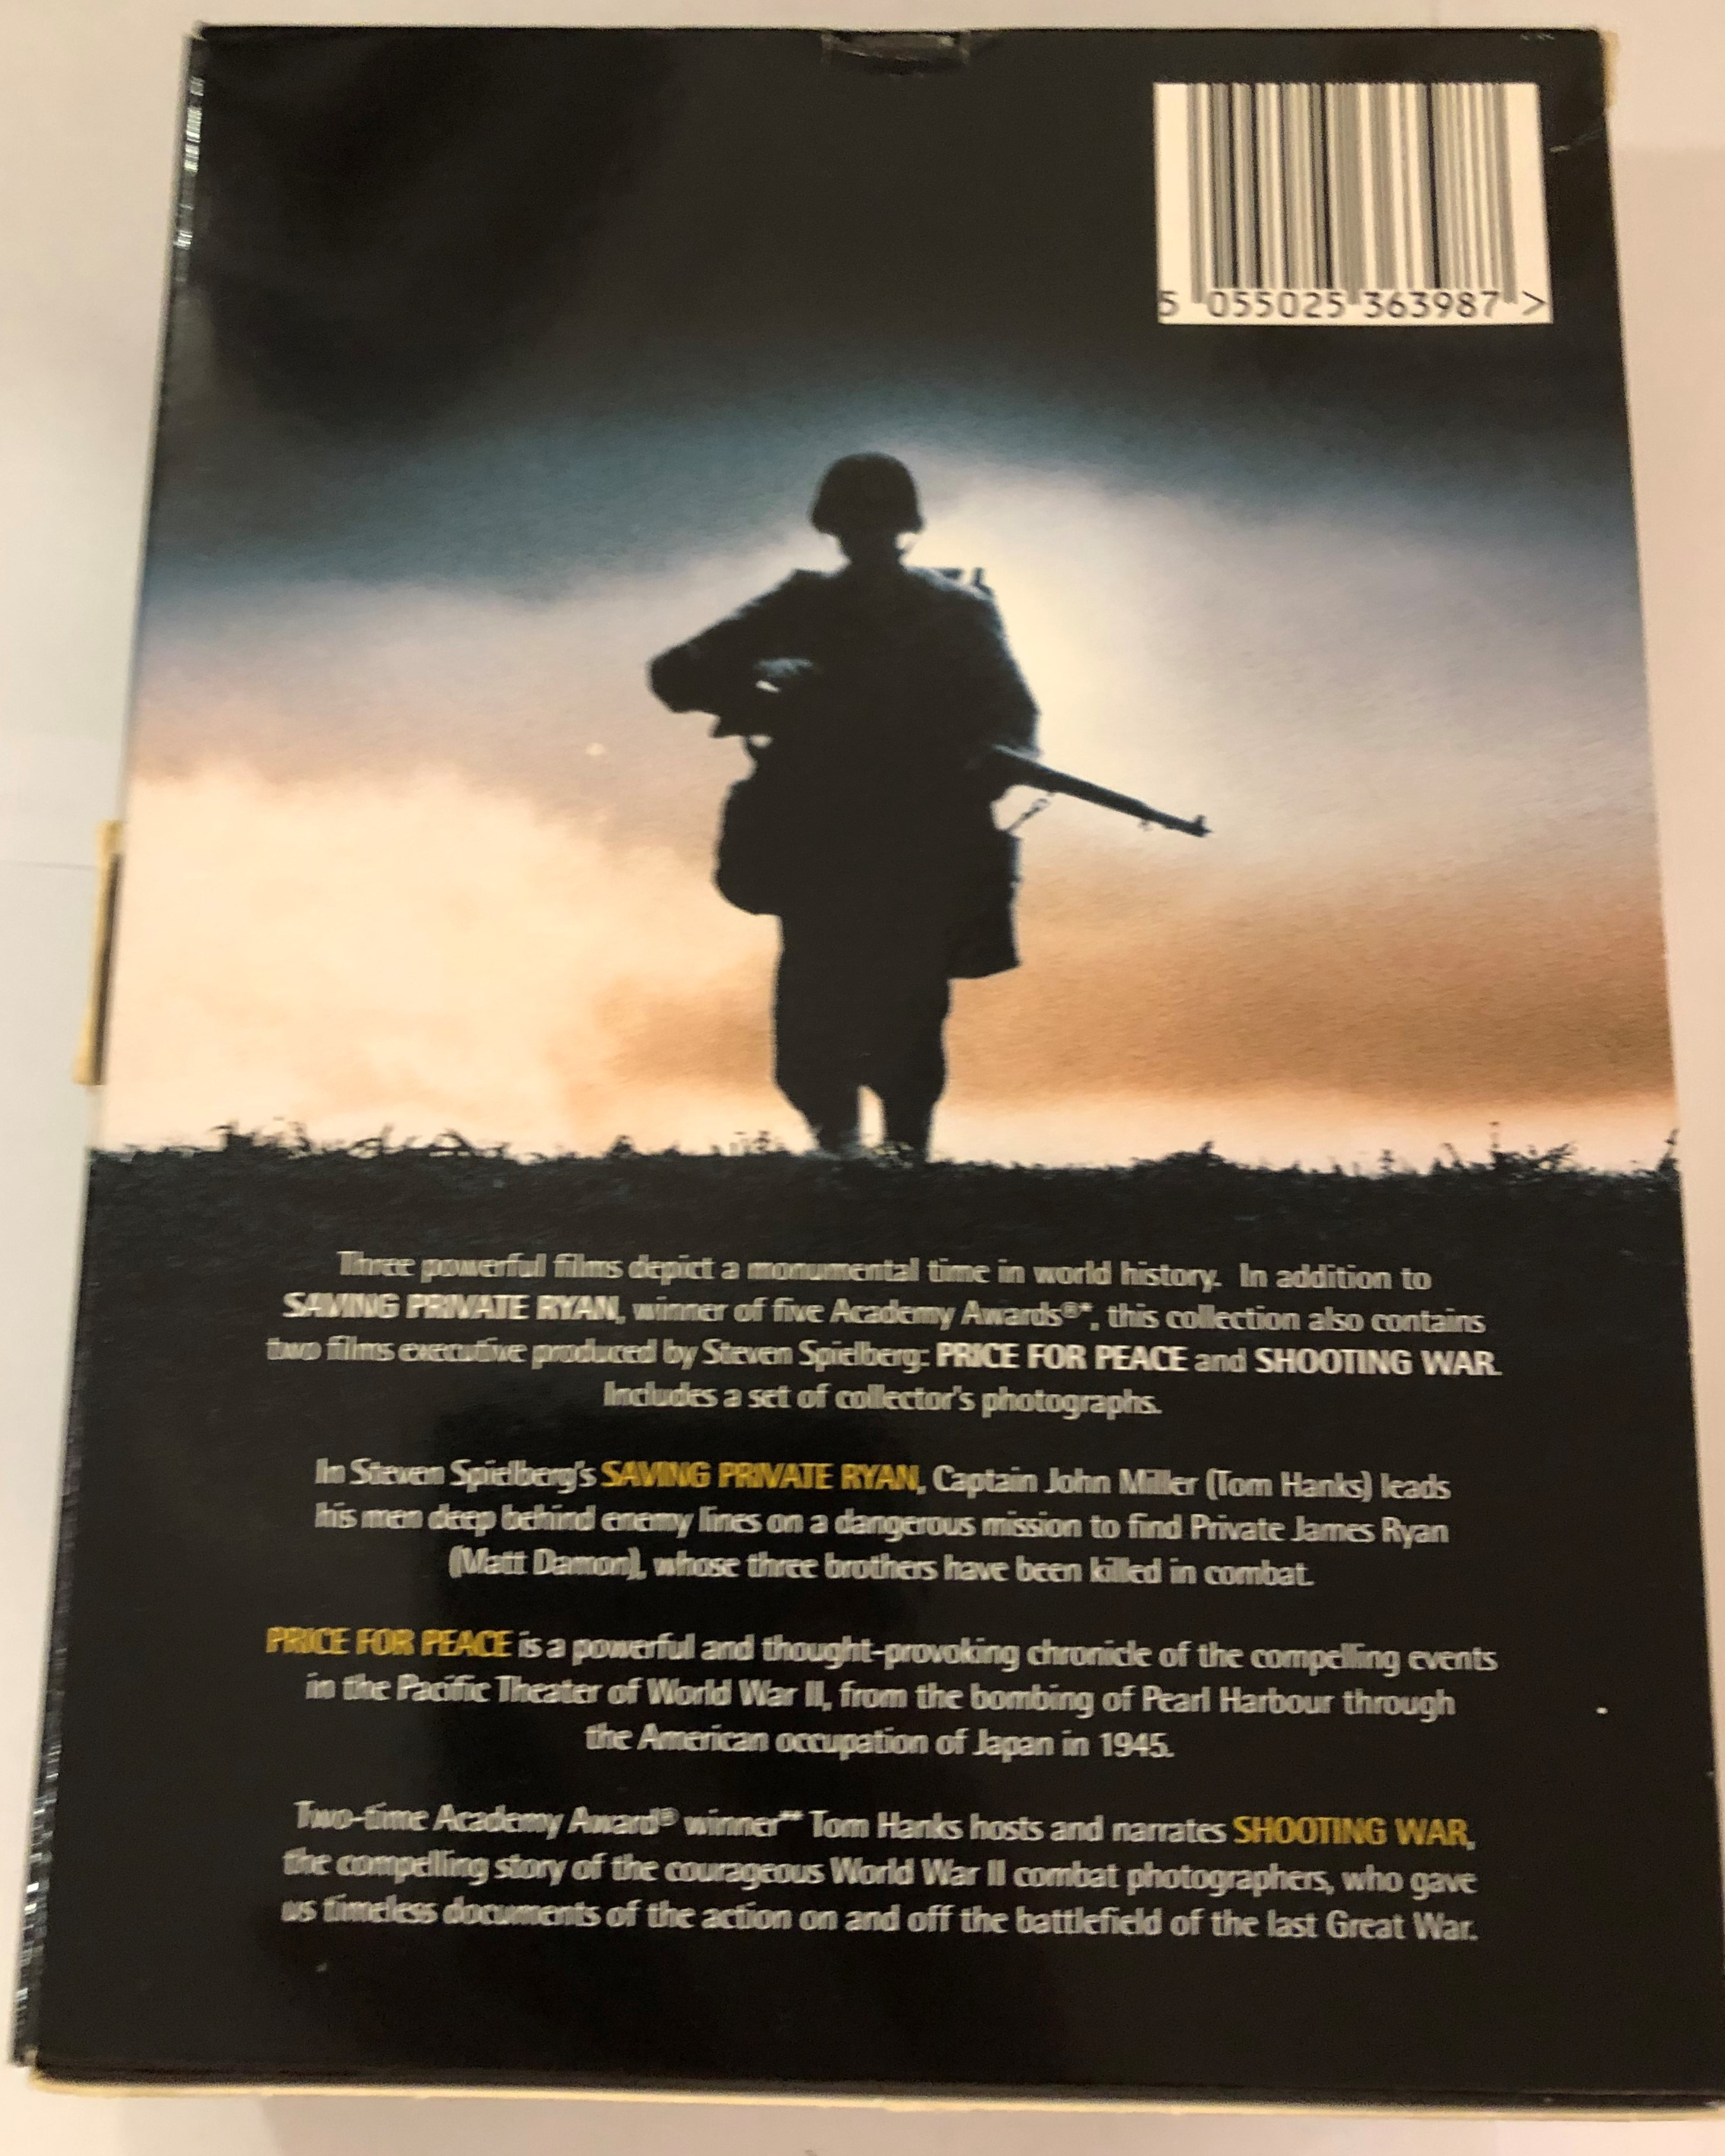 saving-private-ryan-dvd-set-1998-special-edition-directed-by-steven-spielberg-3-.jpg